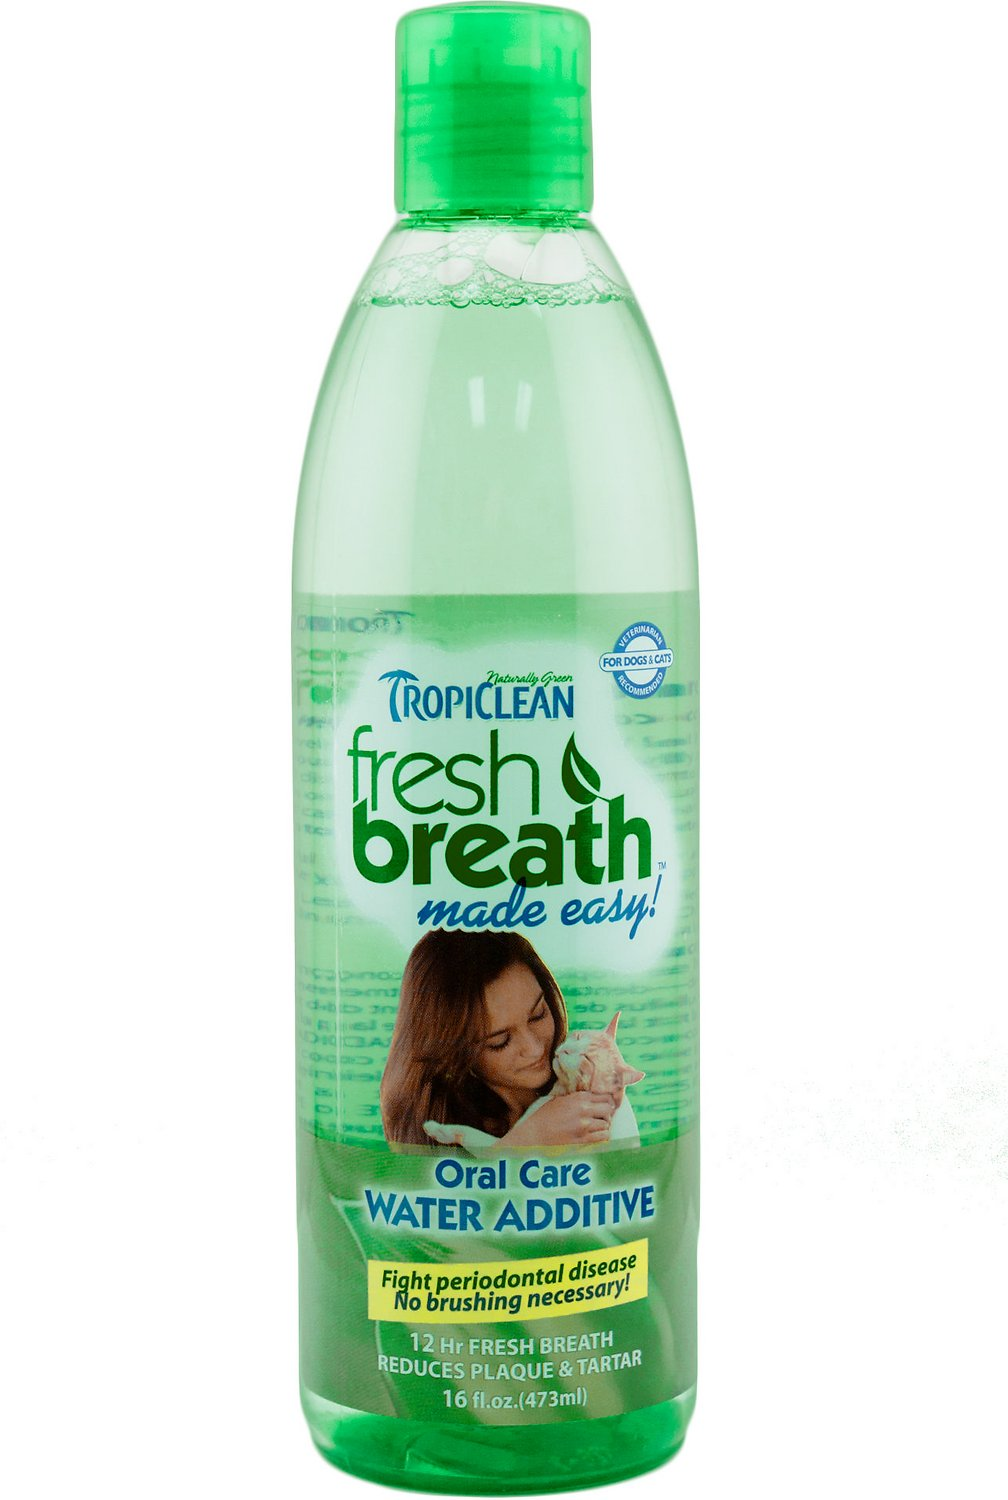 TropiClean Fresh Breath Water Additive For Cats, 16-oz bottle